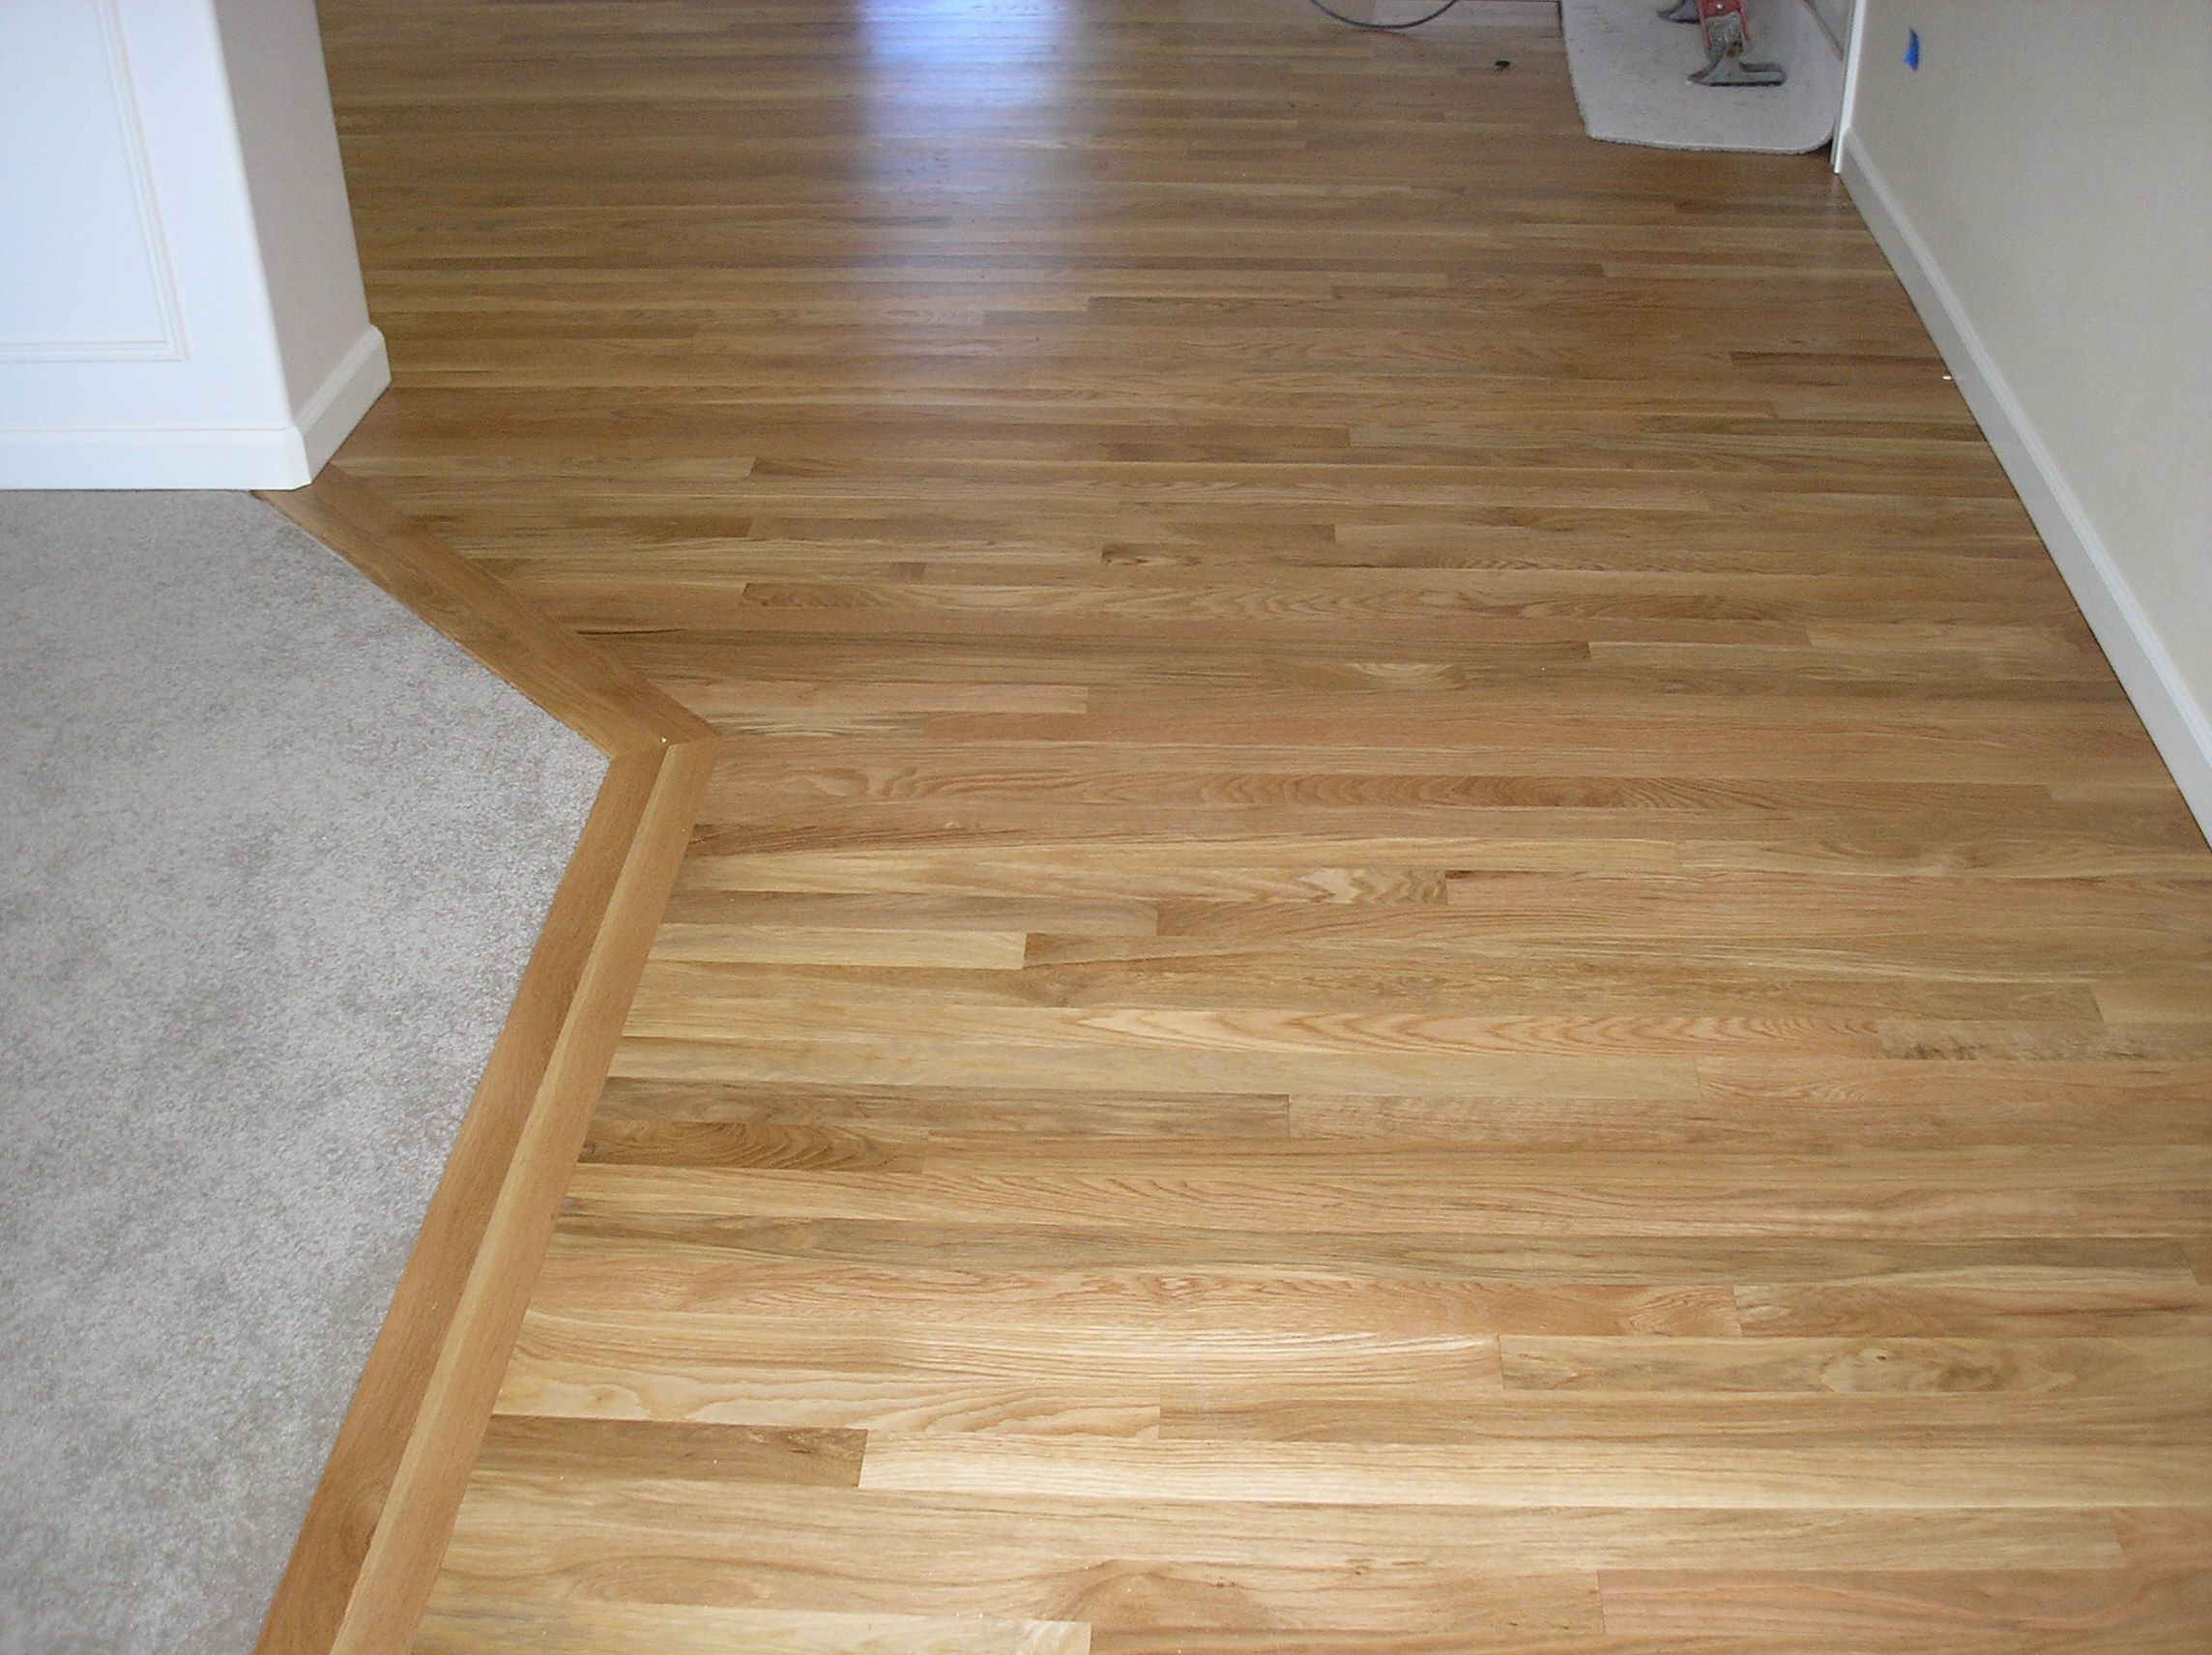 how to install floating engineered hardwood flooring of floating engineered wood flooring wood flooring entry ideas house with floating engineered wood flooring wood flooring entry ideas house pinterest